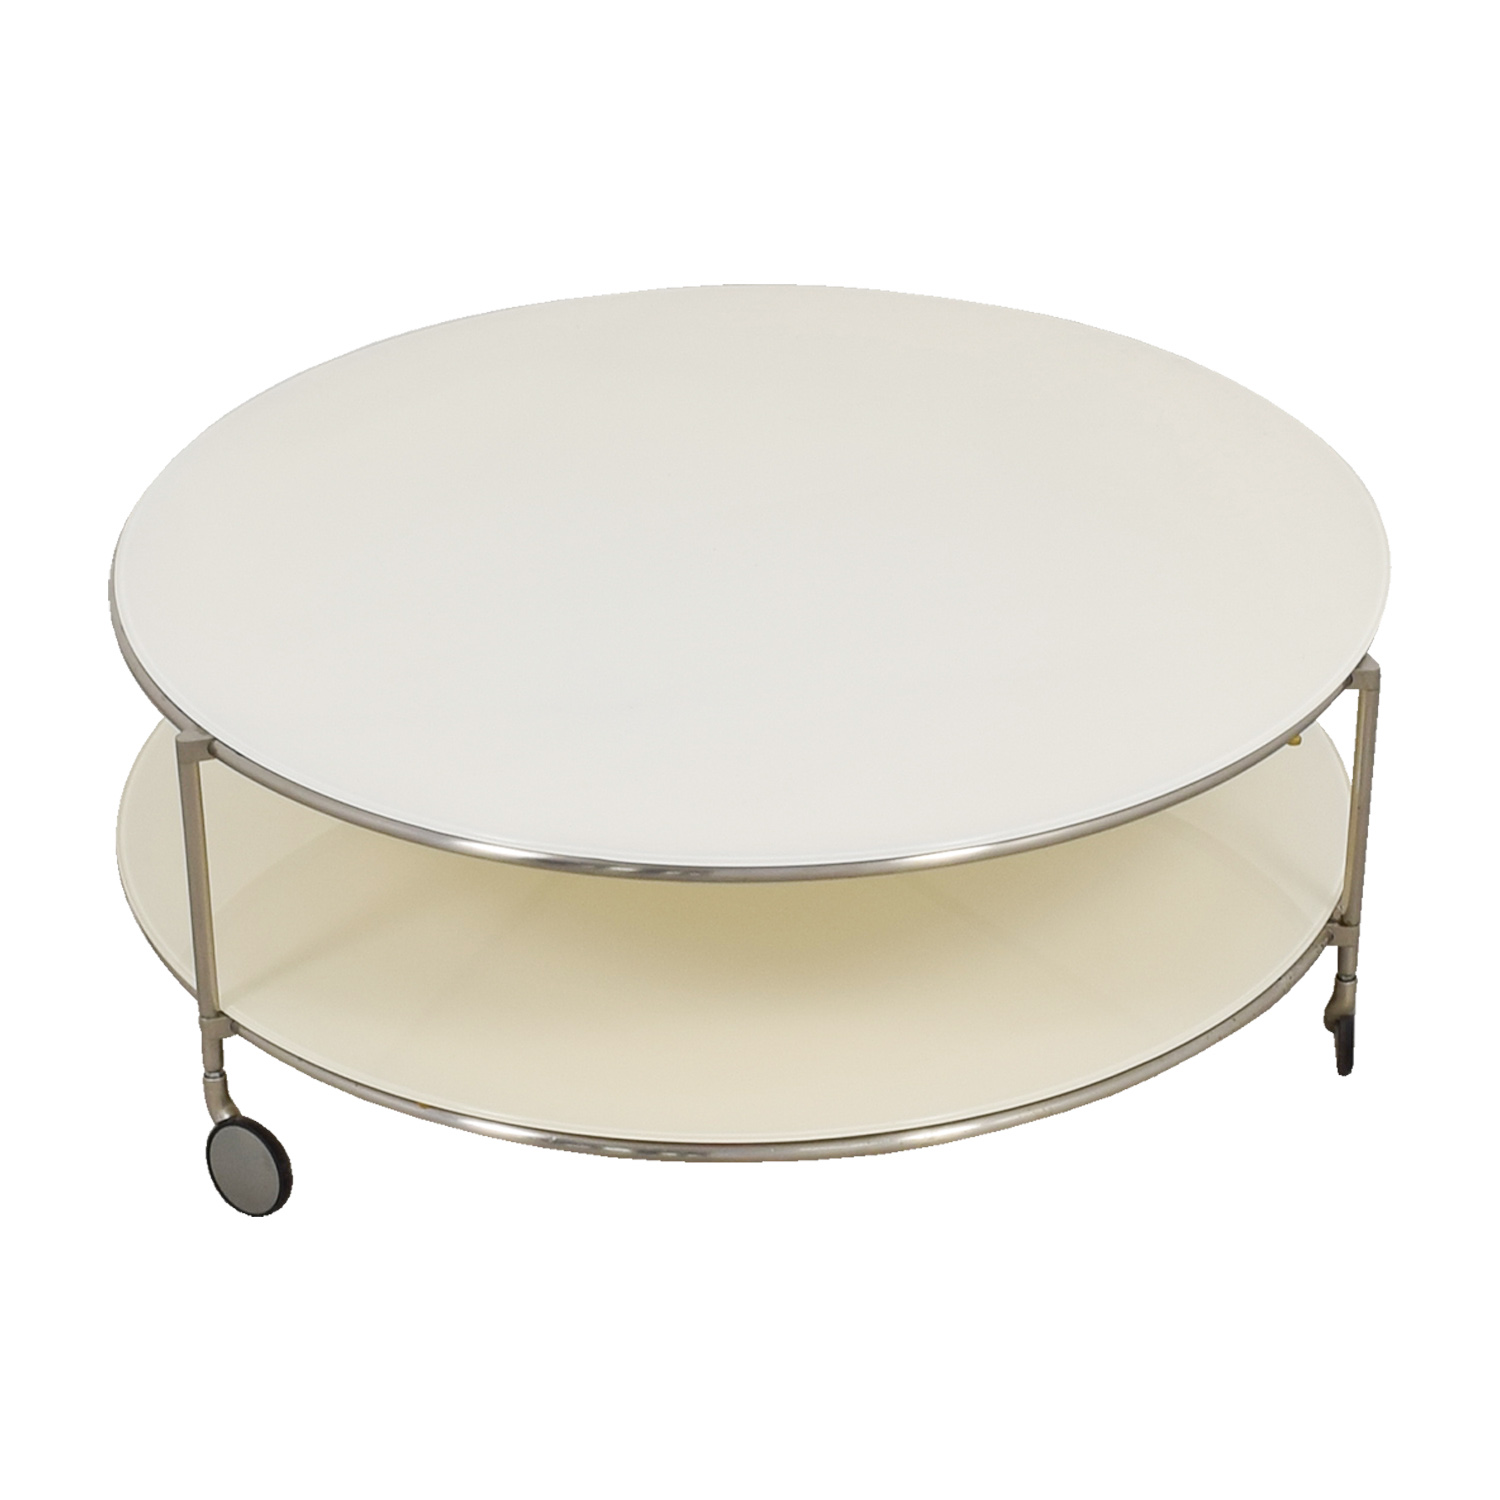 Crate & Barrel White Double Glass Cocktail Table on Castors sale